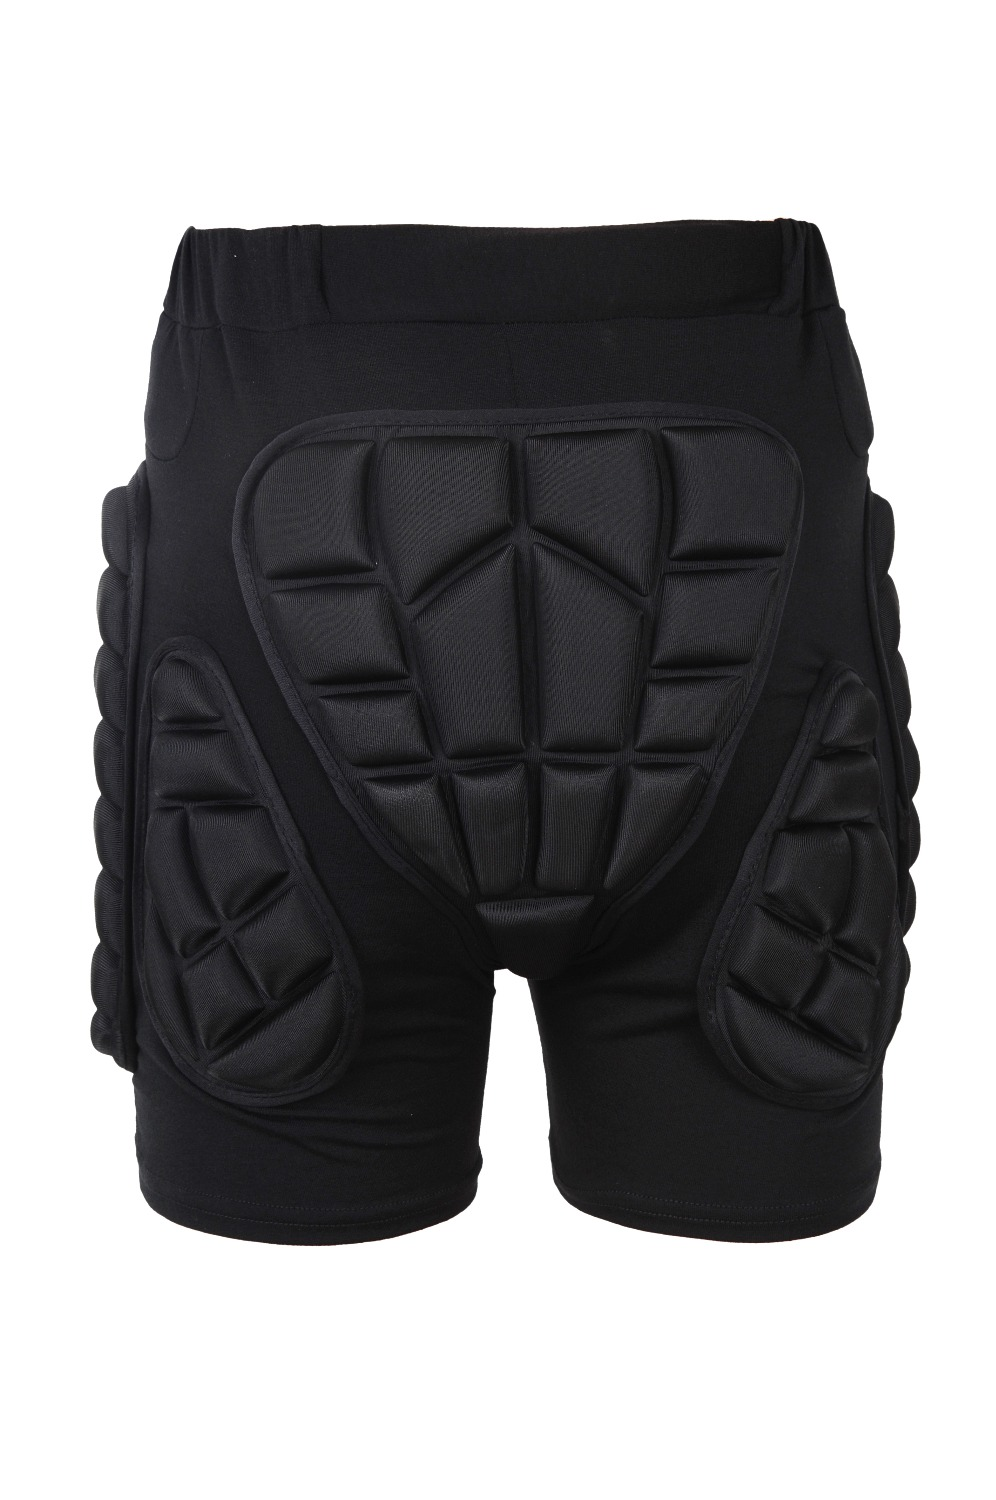 3D Motorcycle   SHORTS   Outdoor Sports Skiing   Shorts   Hip Pad Protector Armor Ski Snowboard Skate Pants Motor   Shorts